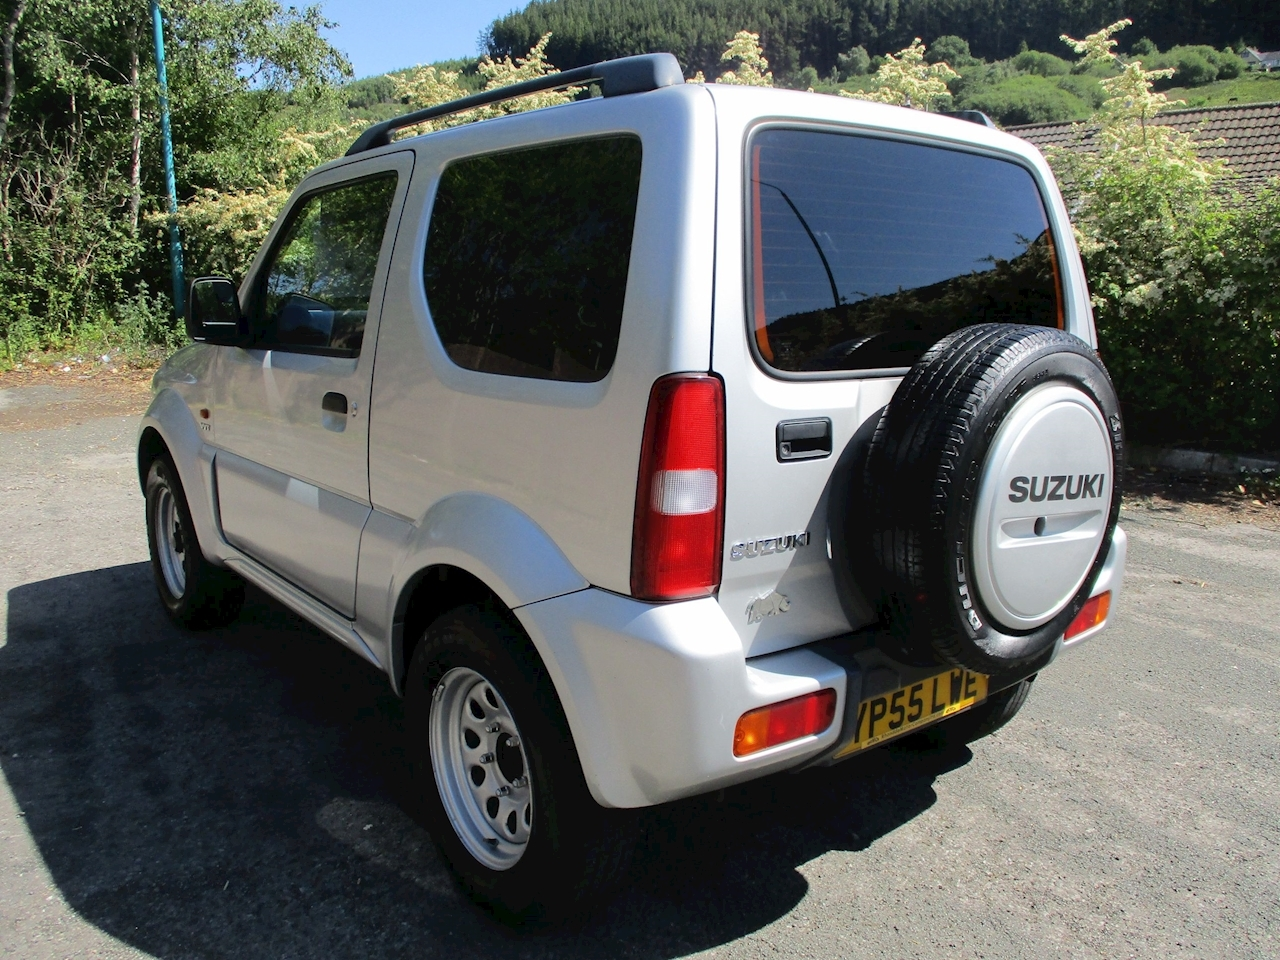 Jimny Jlx Estate 1.3 Manual Petrol